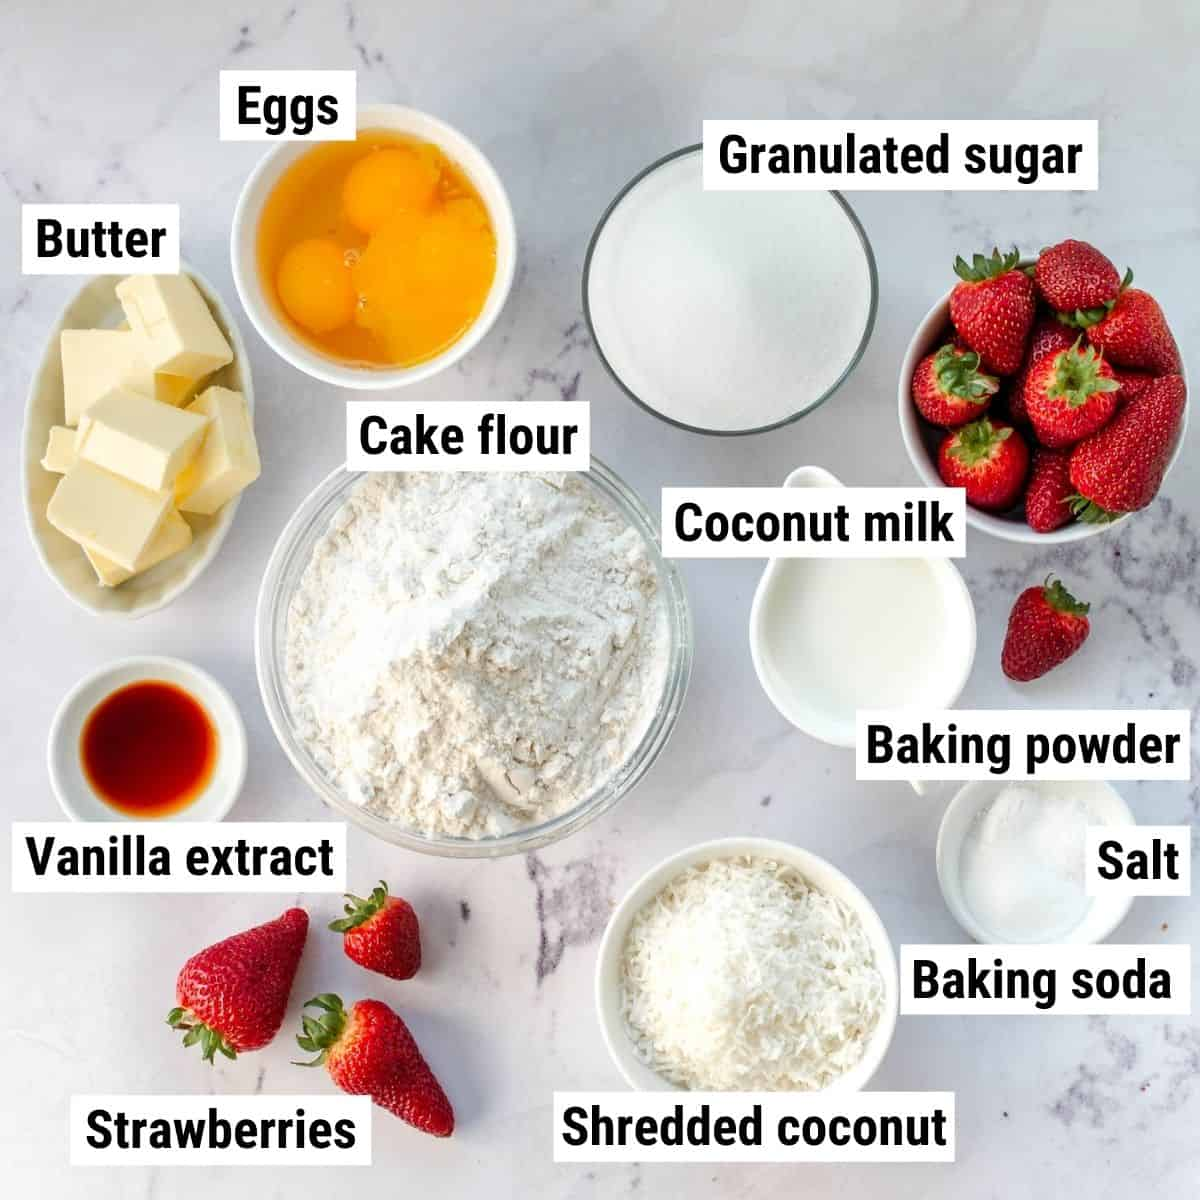 The ingredients to make coconut strawberry cake laid out on a table.